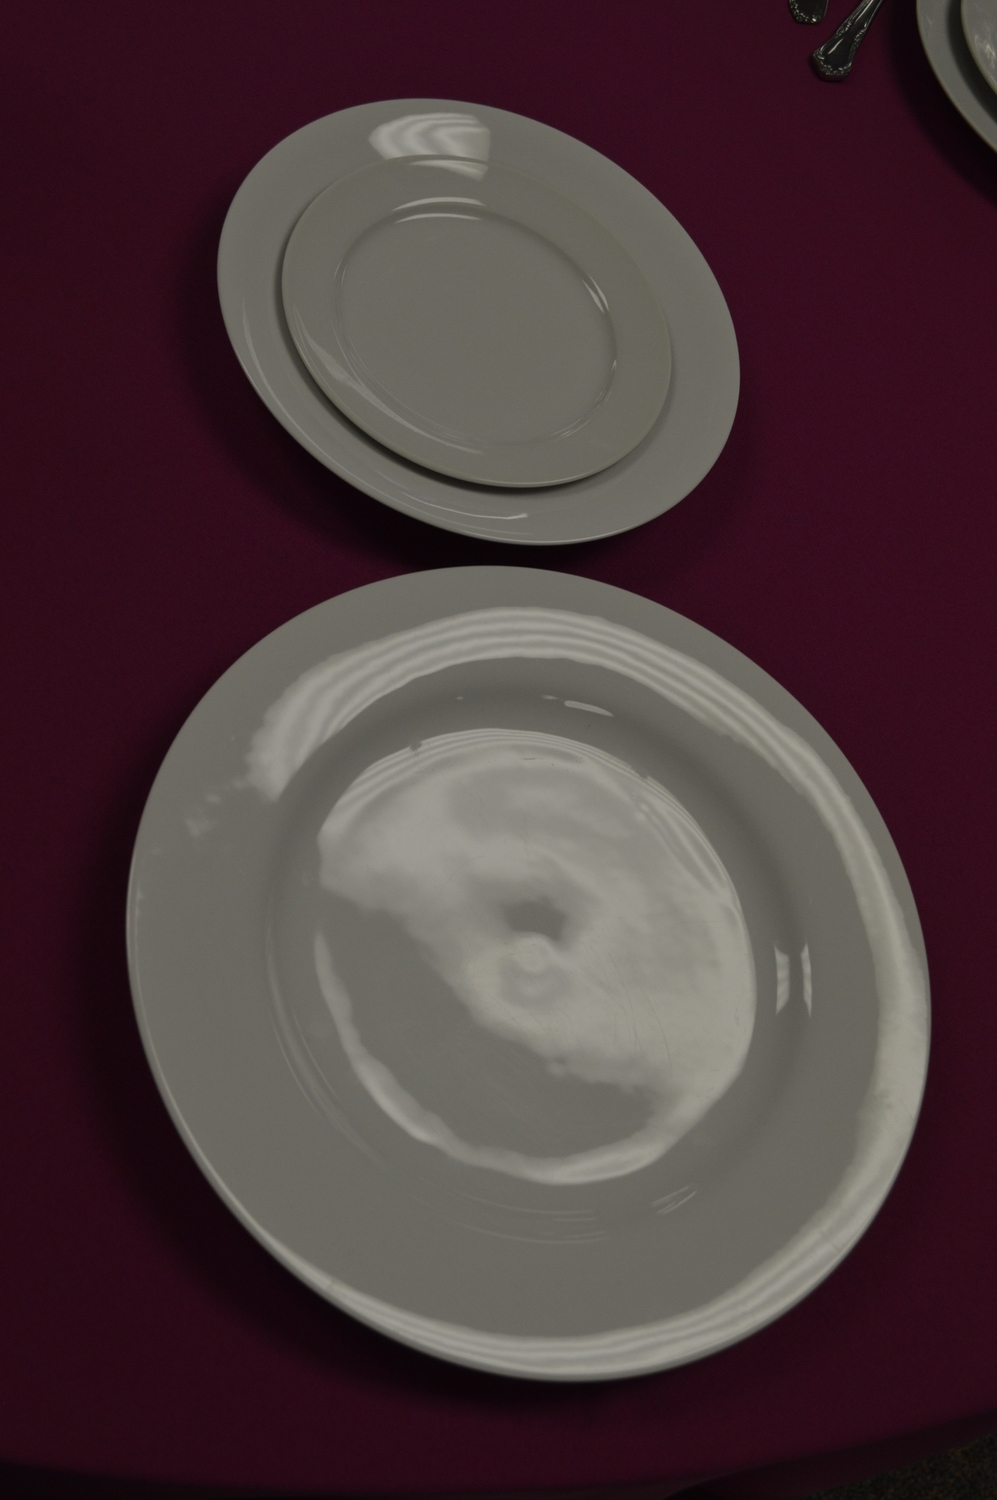 Start by setting your plates like this with the dinner plate on the bottom, salad plate above it, and then set the B&B plate on top of the salad plate. This is the snowman's body.